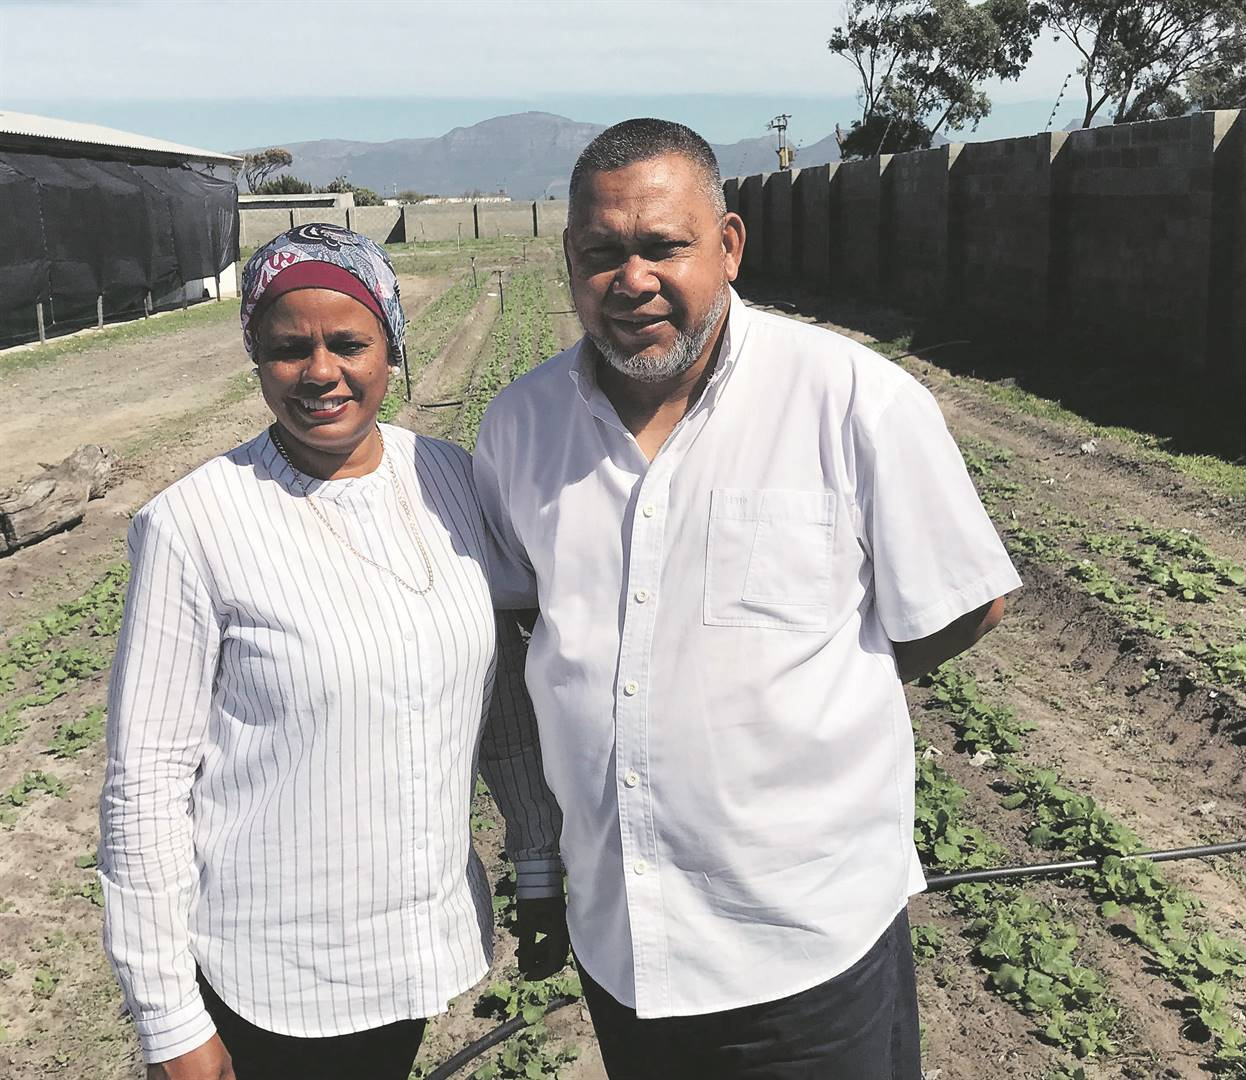 Wadea Jappie and Agmat Brinkhuis of Chamomile Farming Enterprises in the Philippi Horticultural Area. Picture: Biénne Huisman